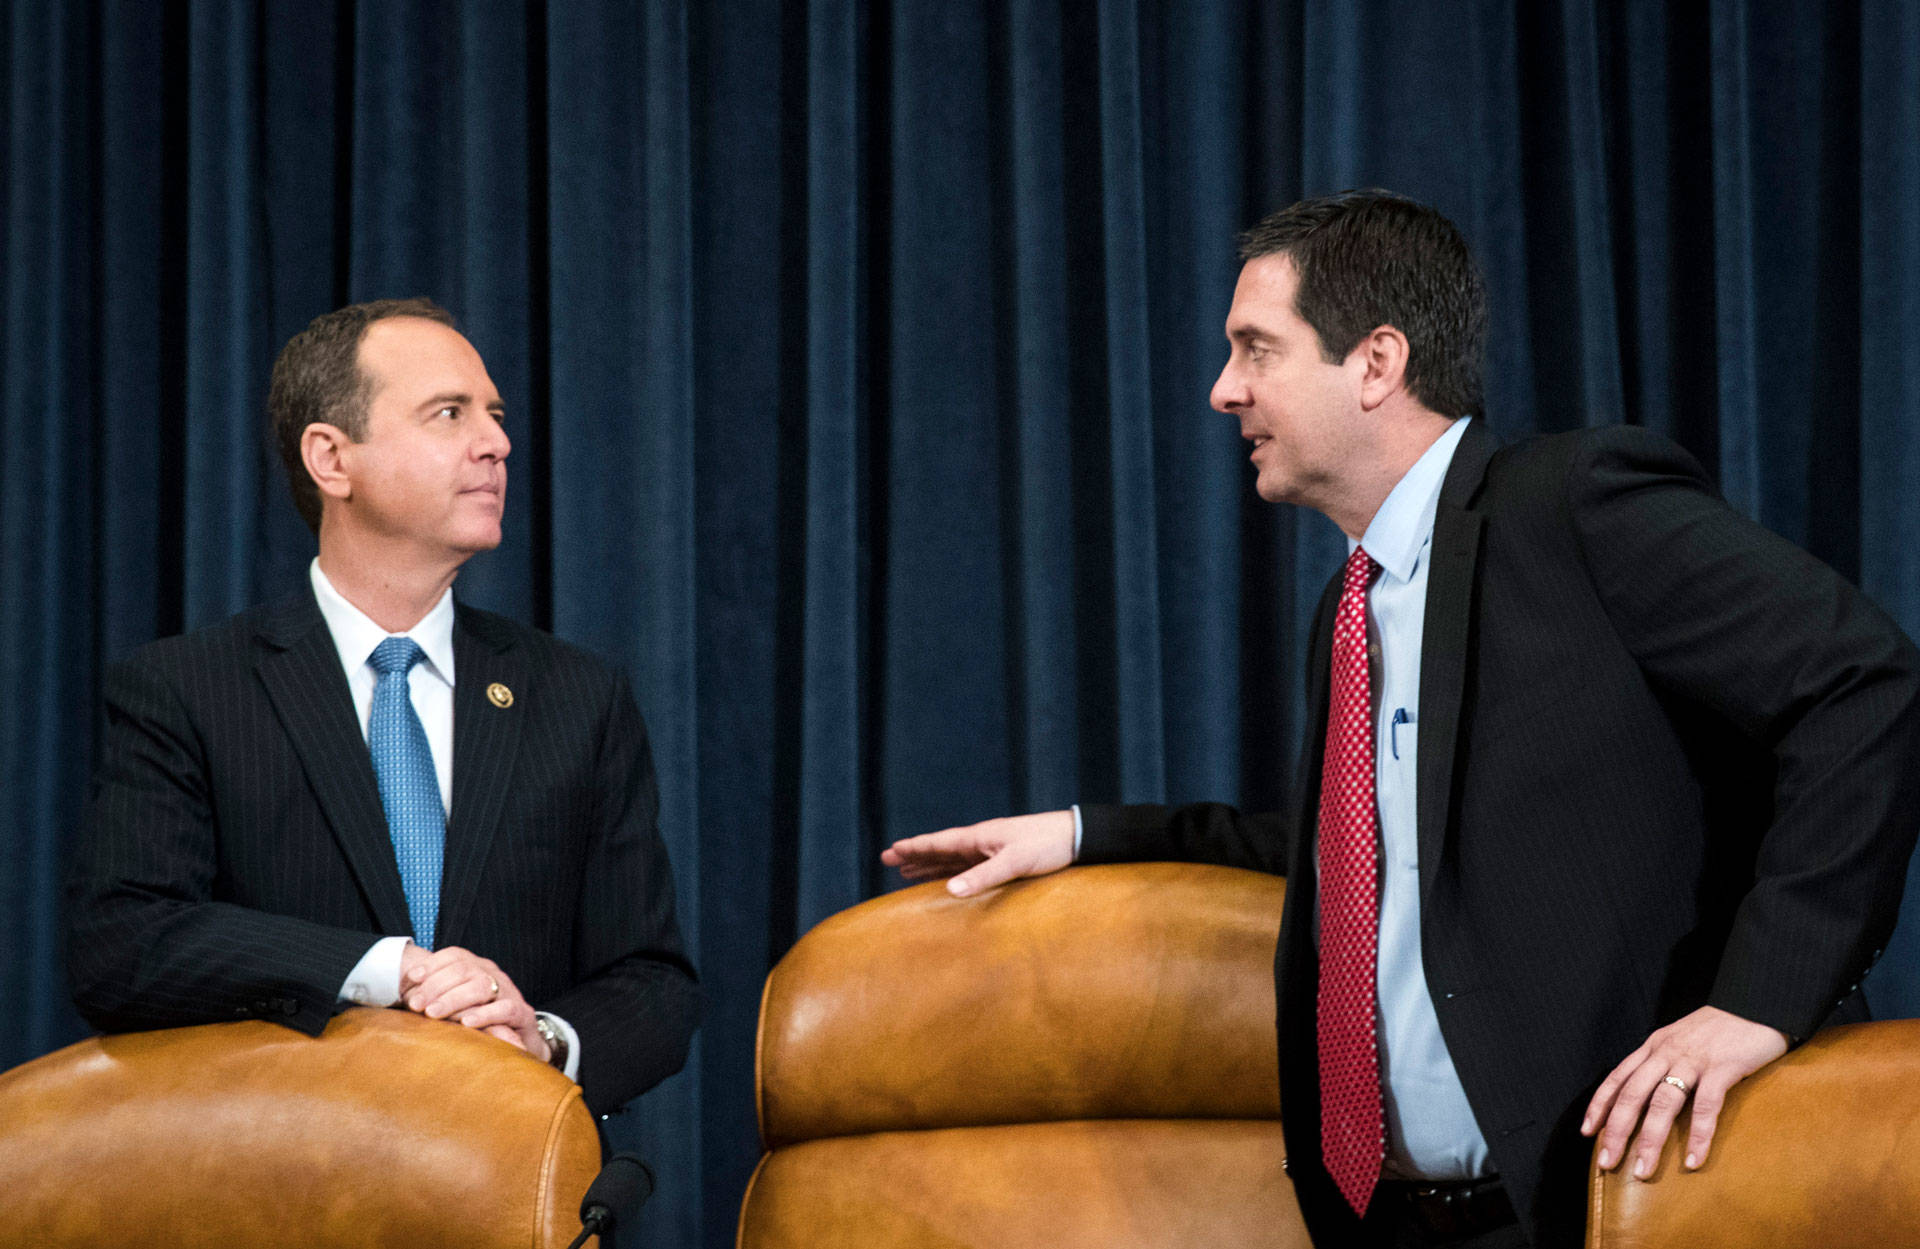 House Intelligence Committee Ranking Member Adam Schiff, D-Calif. (left), and Chairman Devin Nunes, R-Calif., are taking their feud over intelligence memoranda into a new week. Drew Angerer/Getty Images